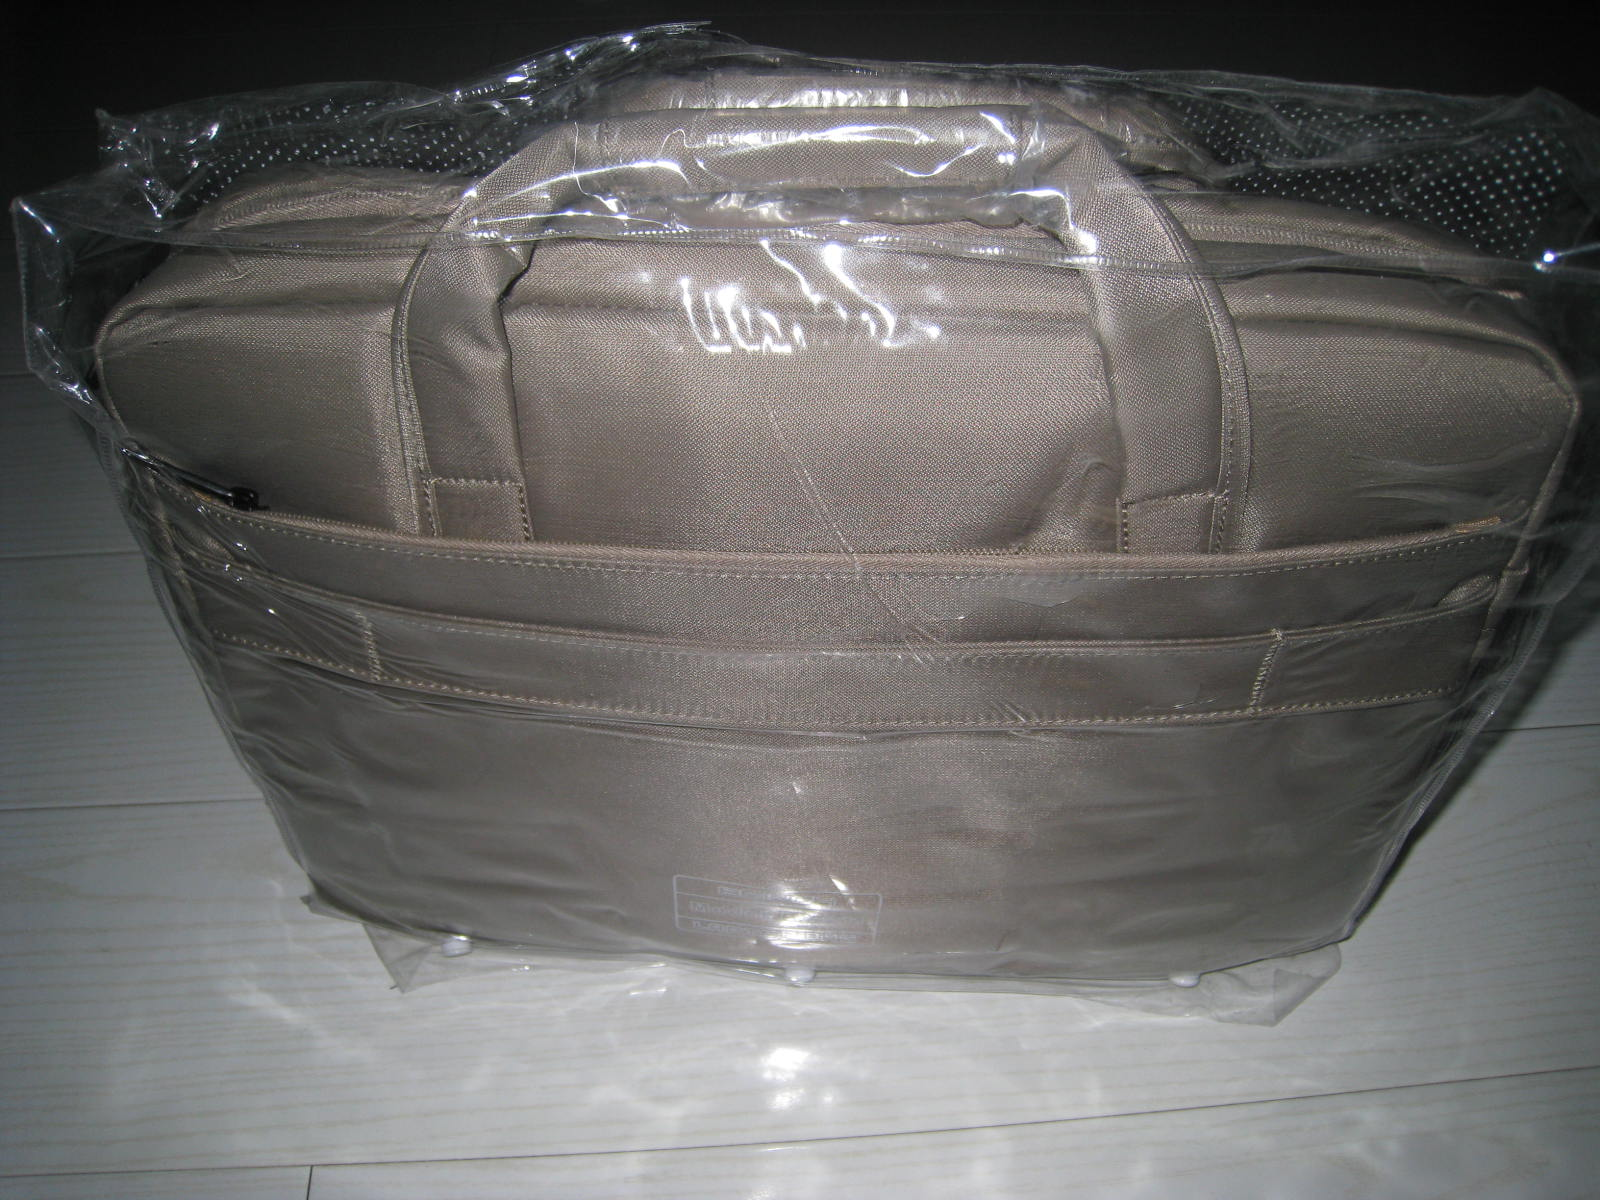 buy cheap s online from china 00168153 replica